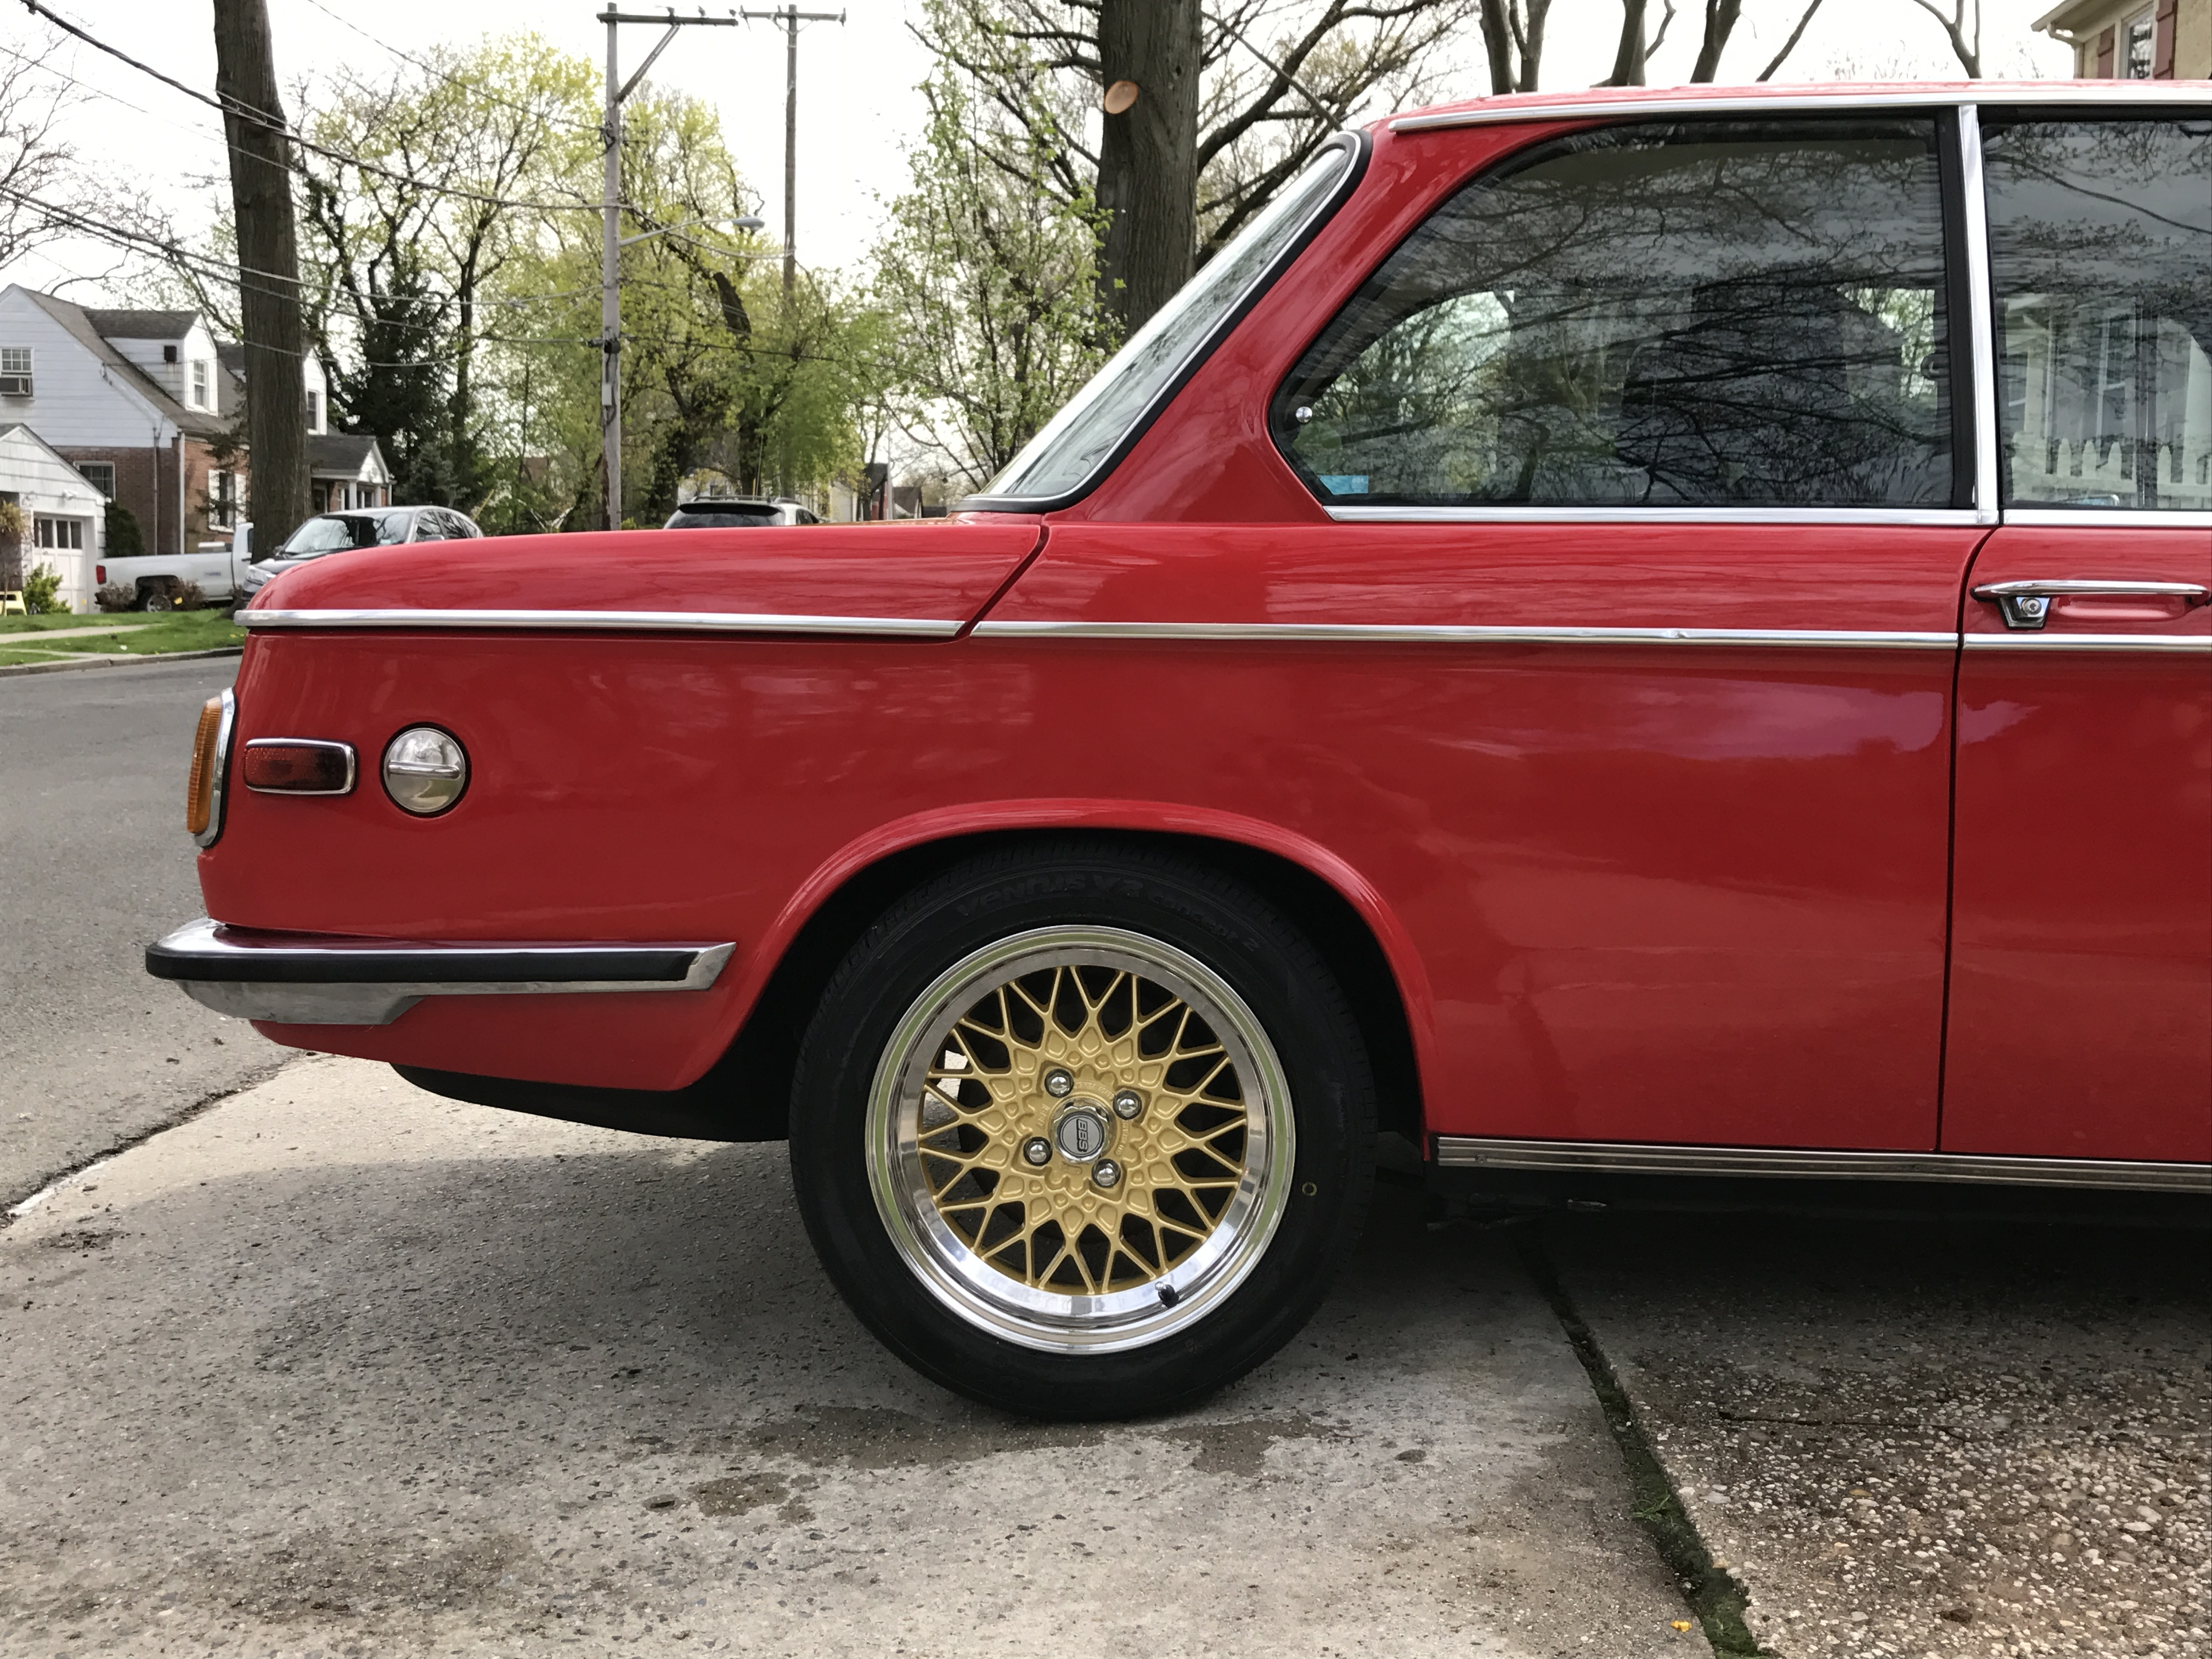 Euro Bbs Mahle 15 Rubbing In Rear Need Help Bmw 2002 And Other